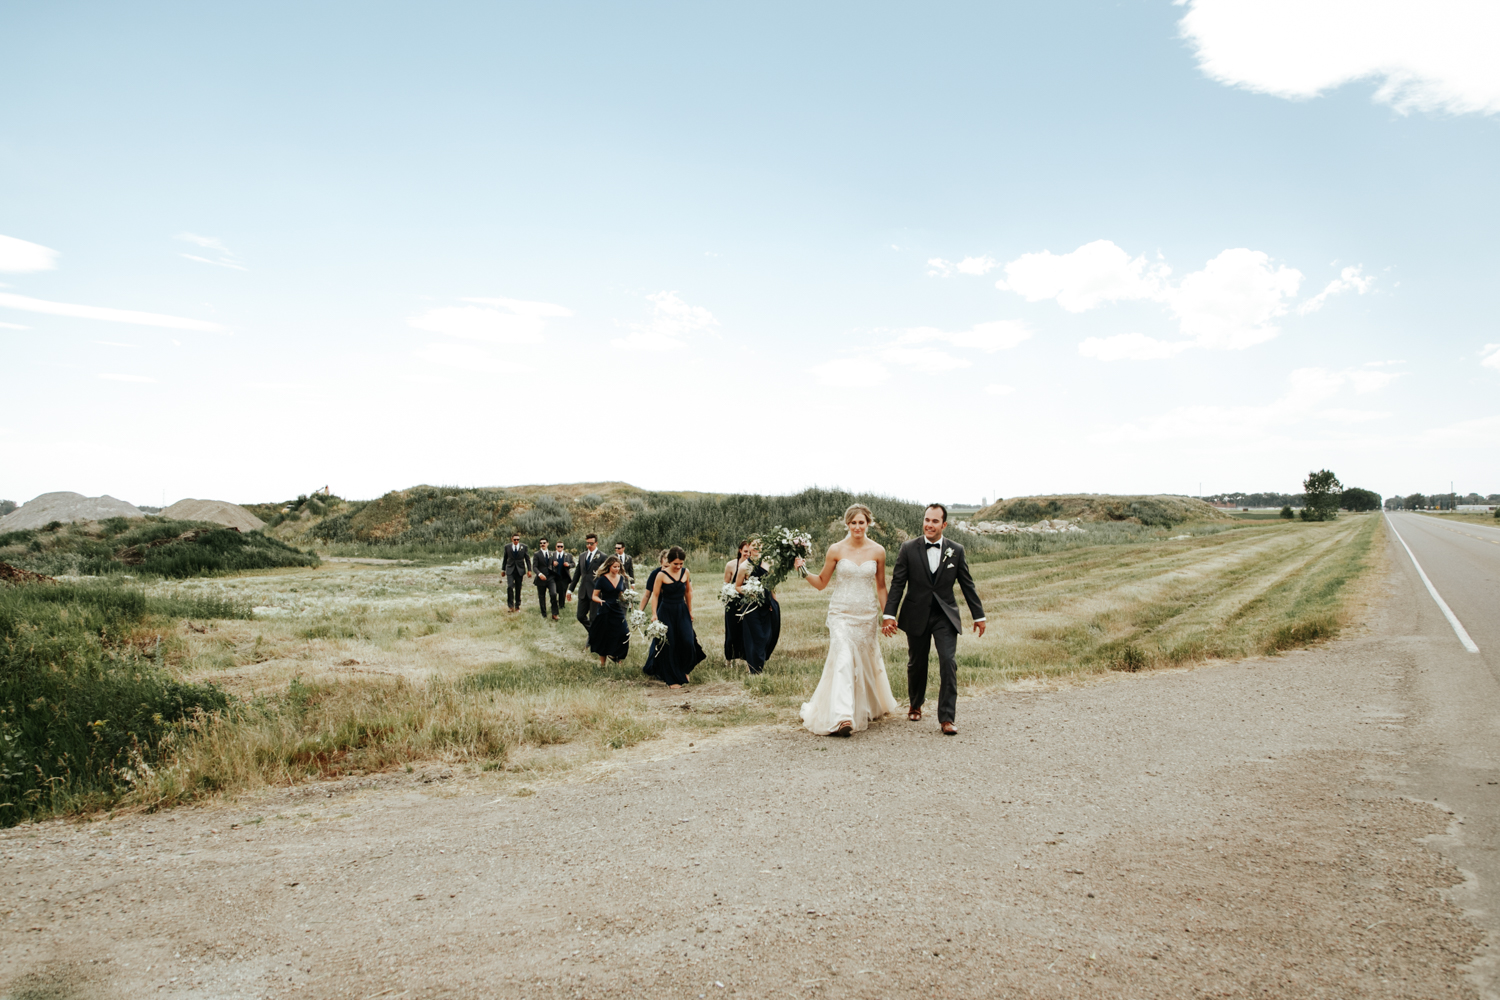 lethbridge-photographer-readymade-community-centre-wedding-coaldale-bailey-joel-picture-image-photo-41.jpg